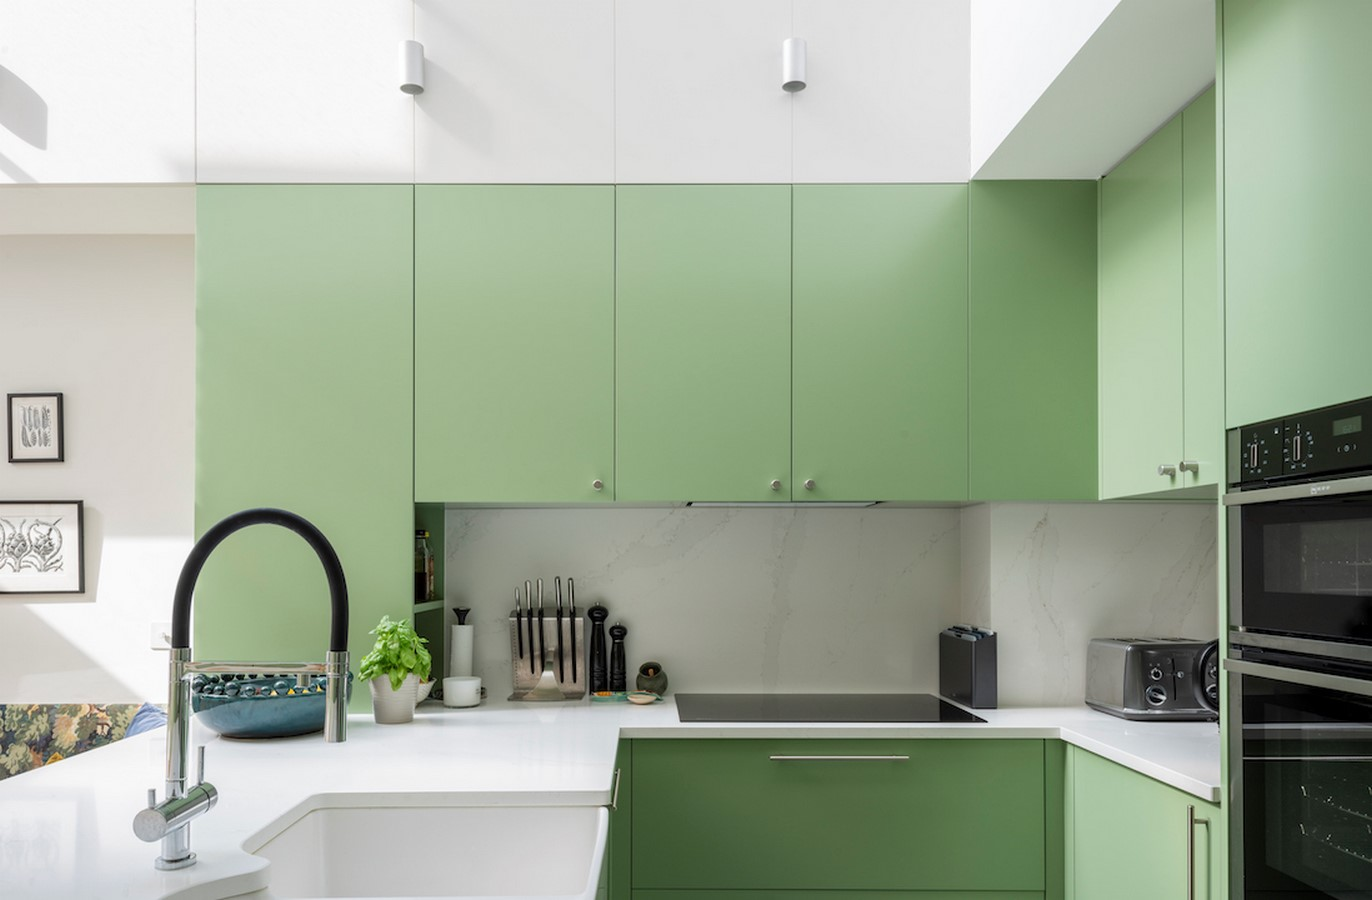 Harcombe House by Paul Archer Design - Sheet2